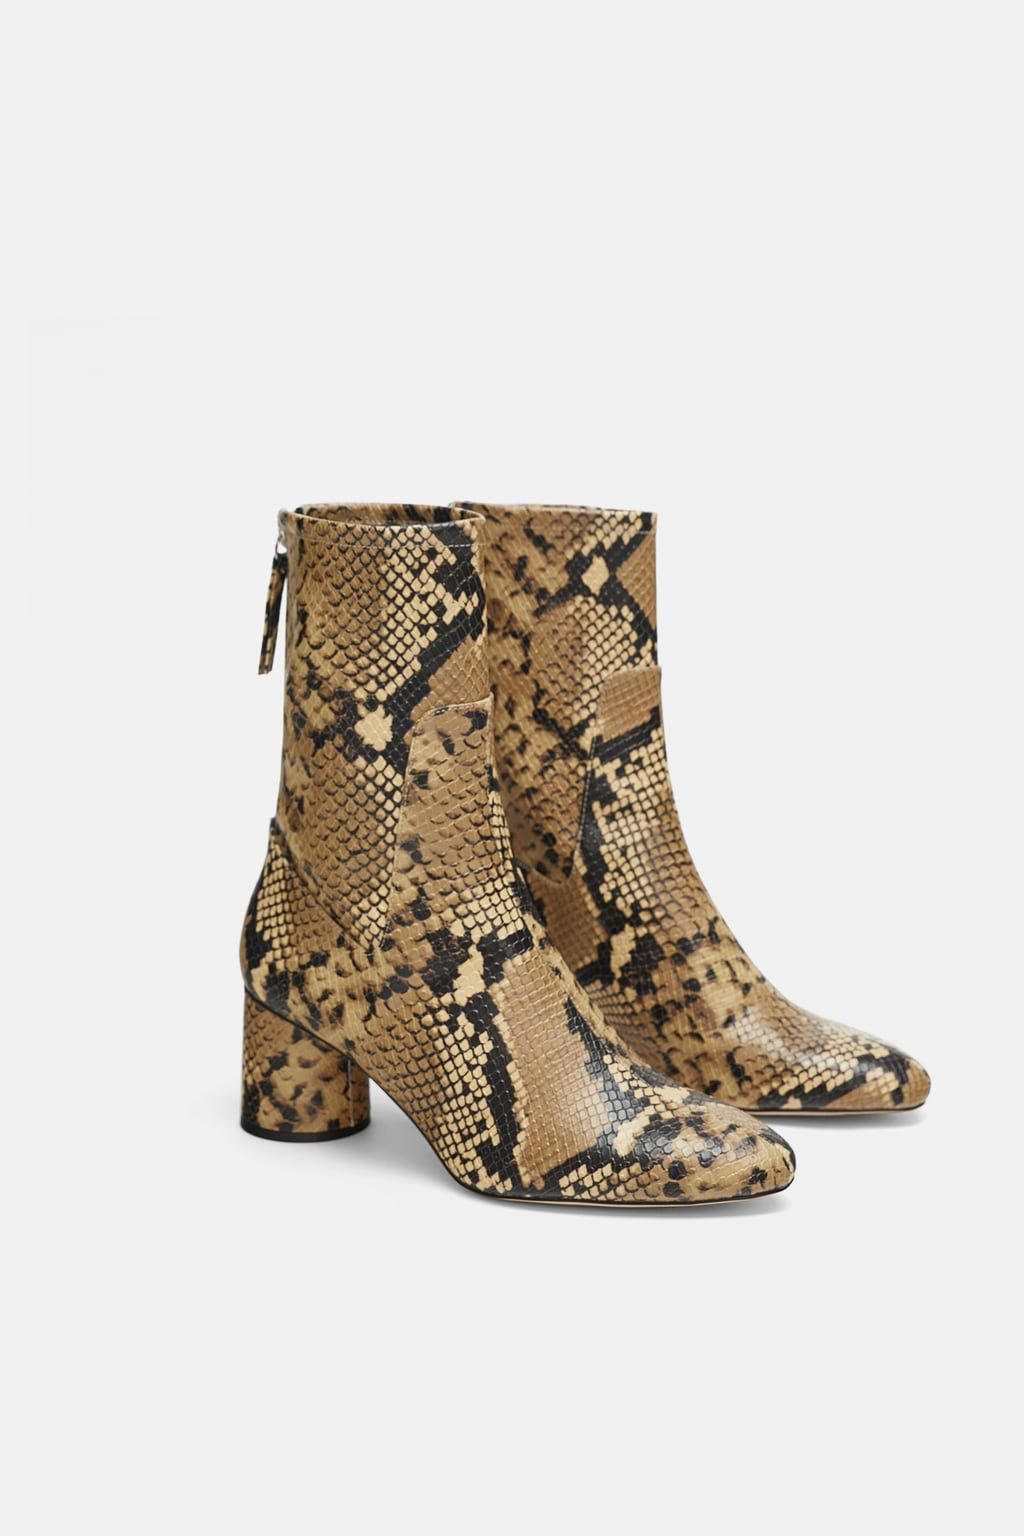 29189377d991 Image 4 of HEELED ANIMAL PRINT ANKLE BOOTS from Zara